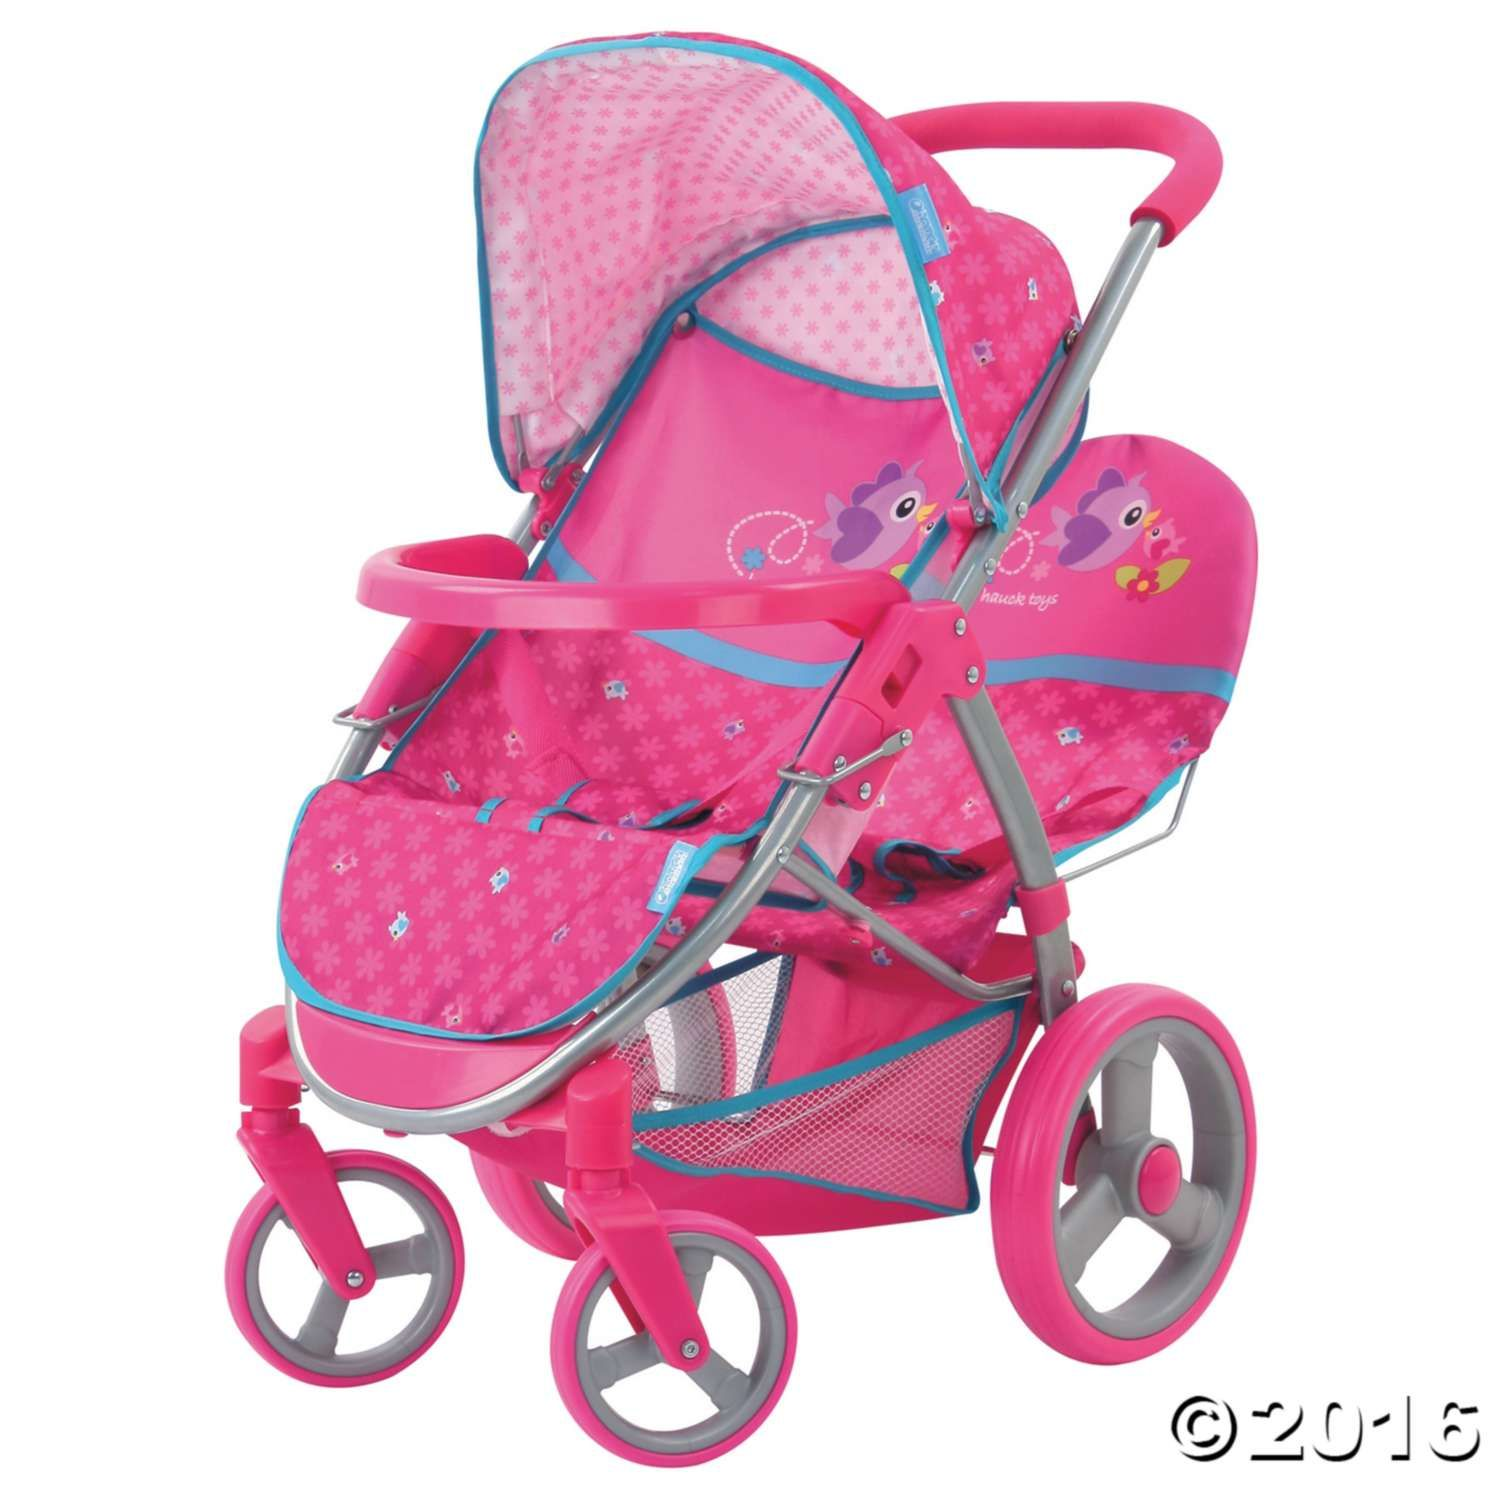 Bitty's Double Stroller (With images) Baby doll